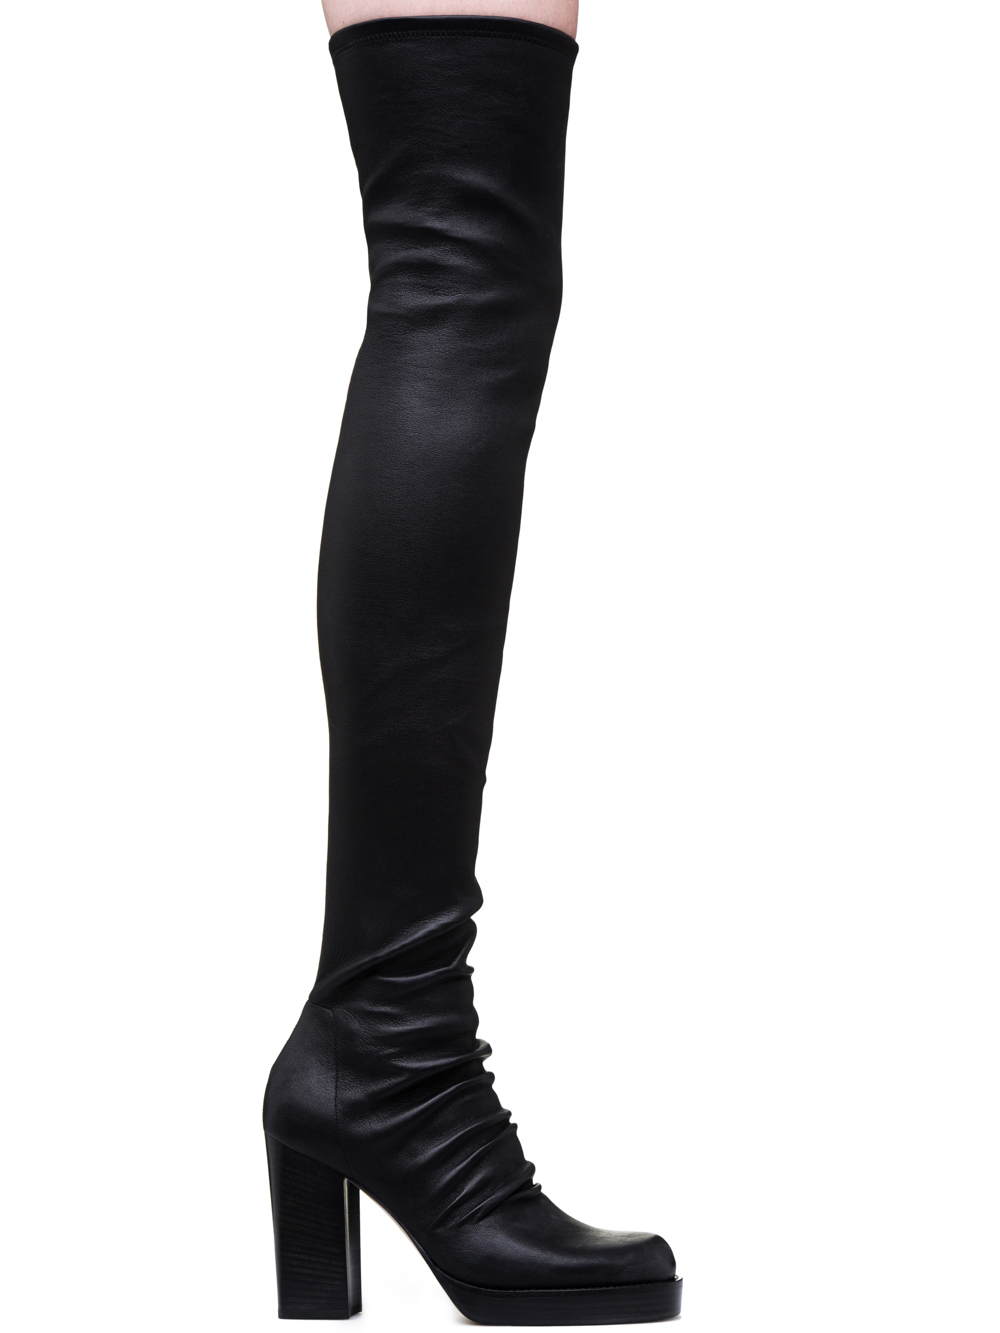 RICK OWENS STOCKING CHUNKY BOOTS IN STRETCH LAMB LEATHER